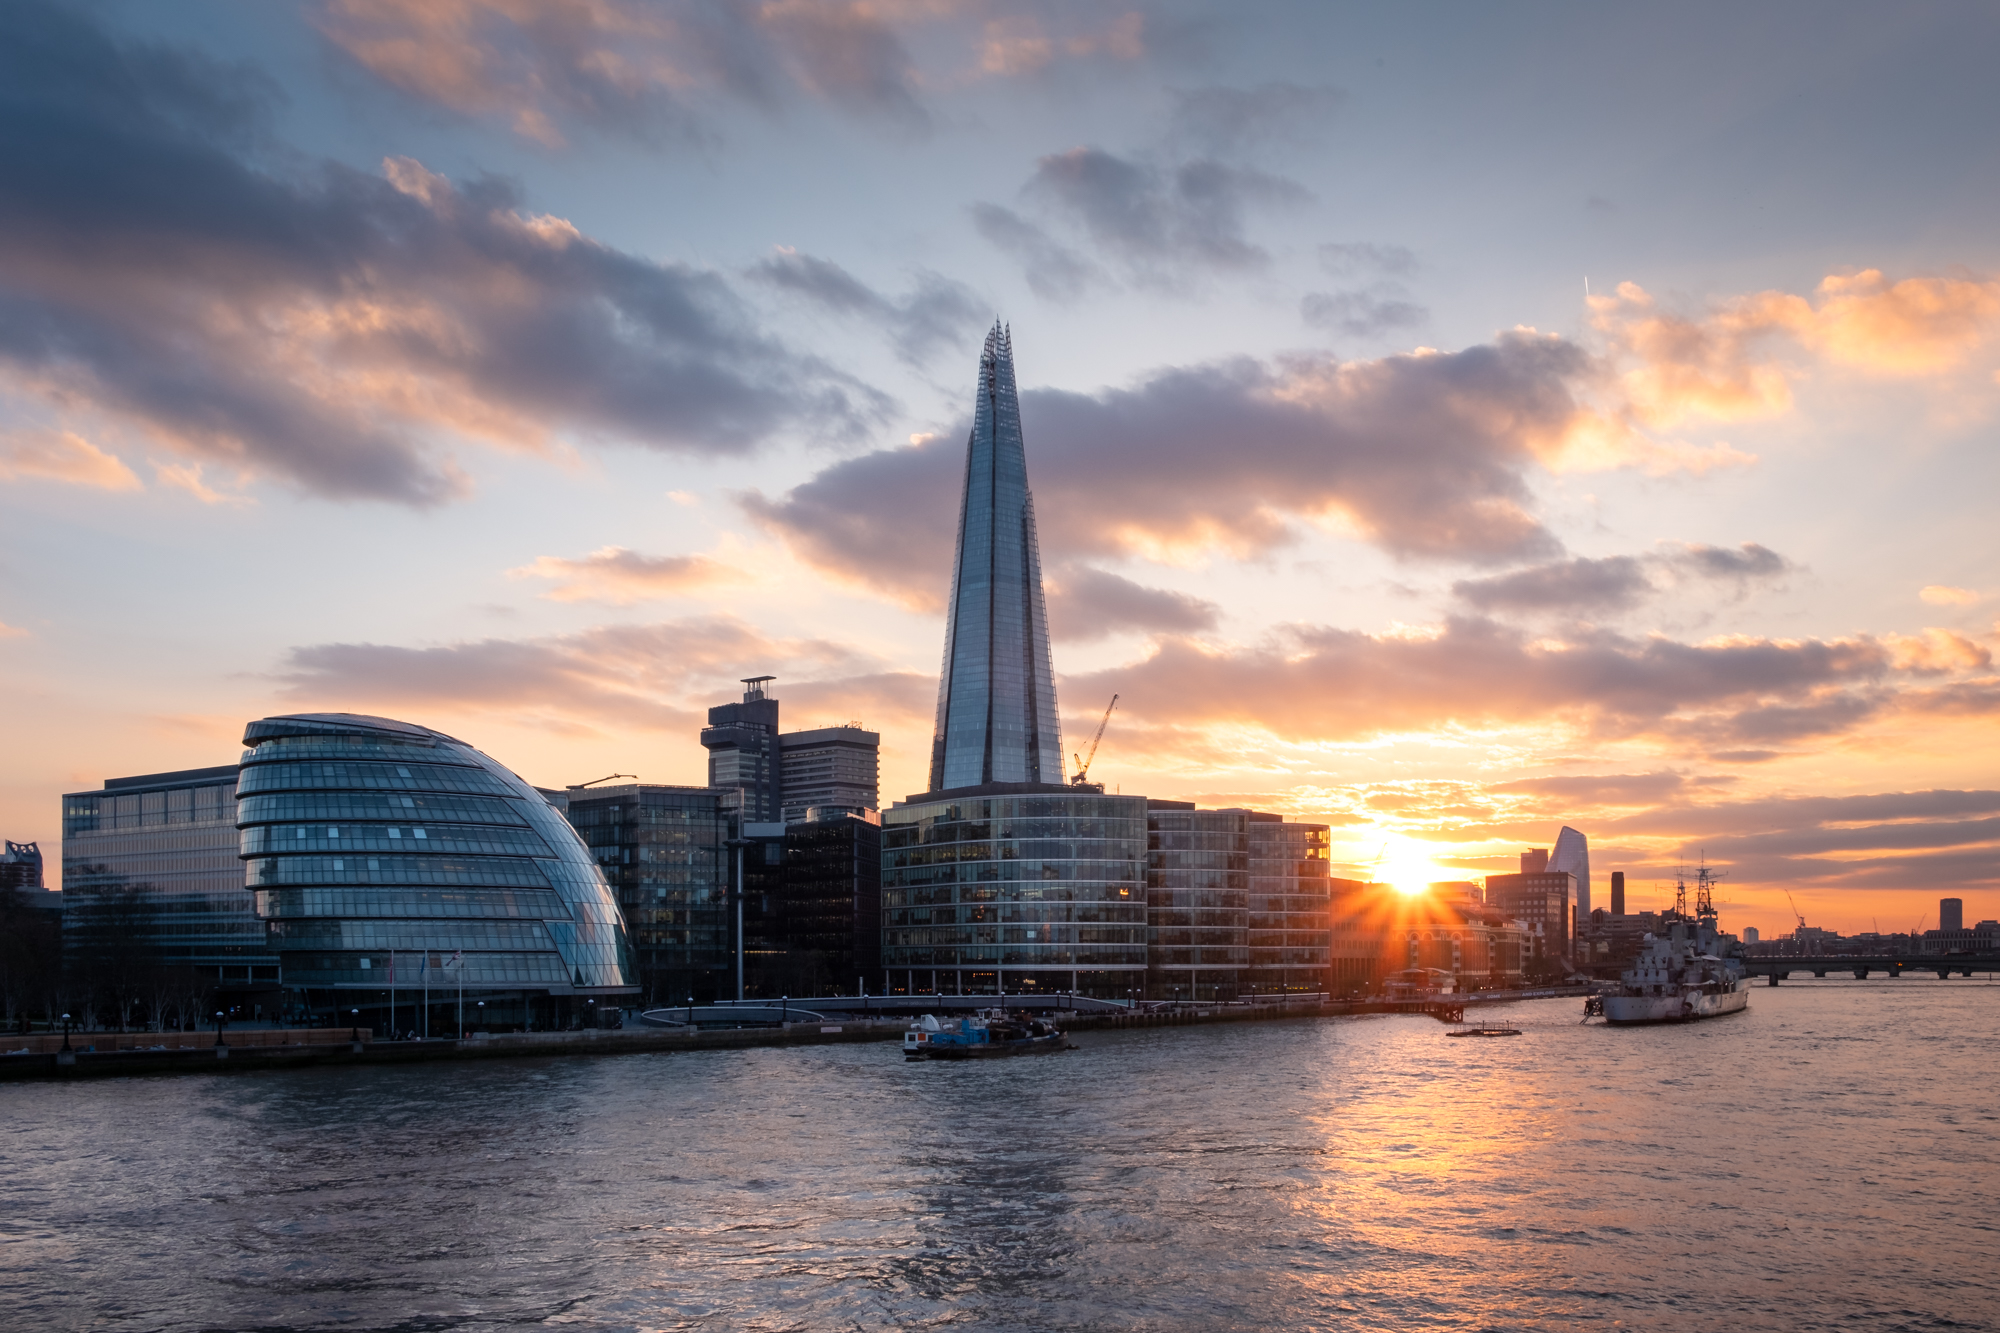 More London and The Shard | Fujifilm XT-30 | XF18-55mm | 18mm | 1/45th Second | f/13 | ISO160